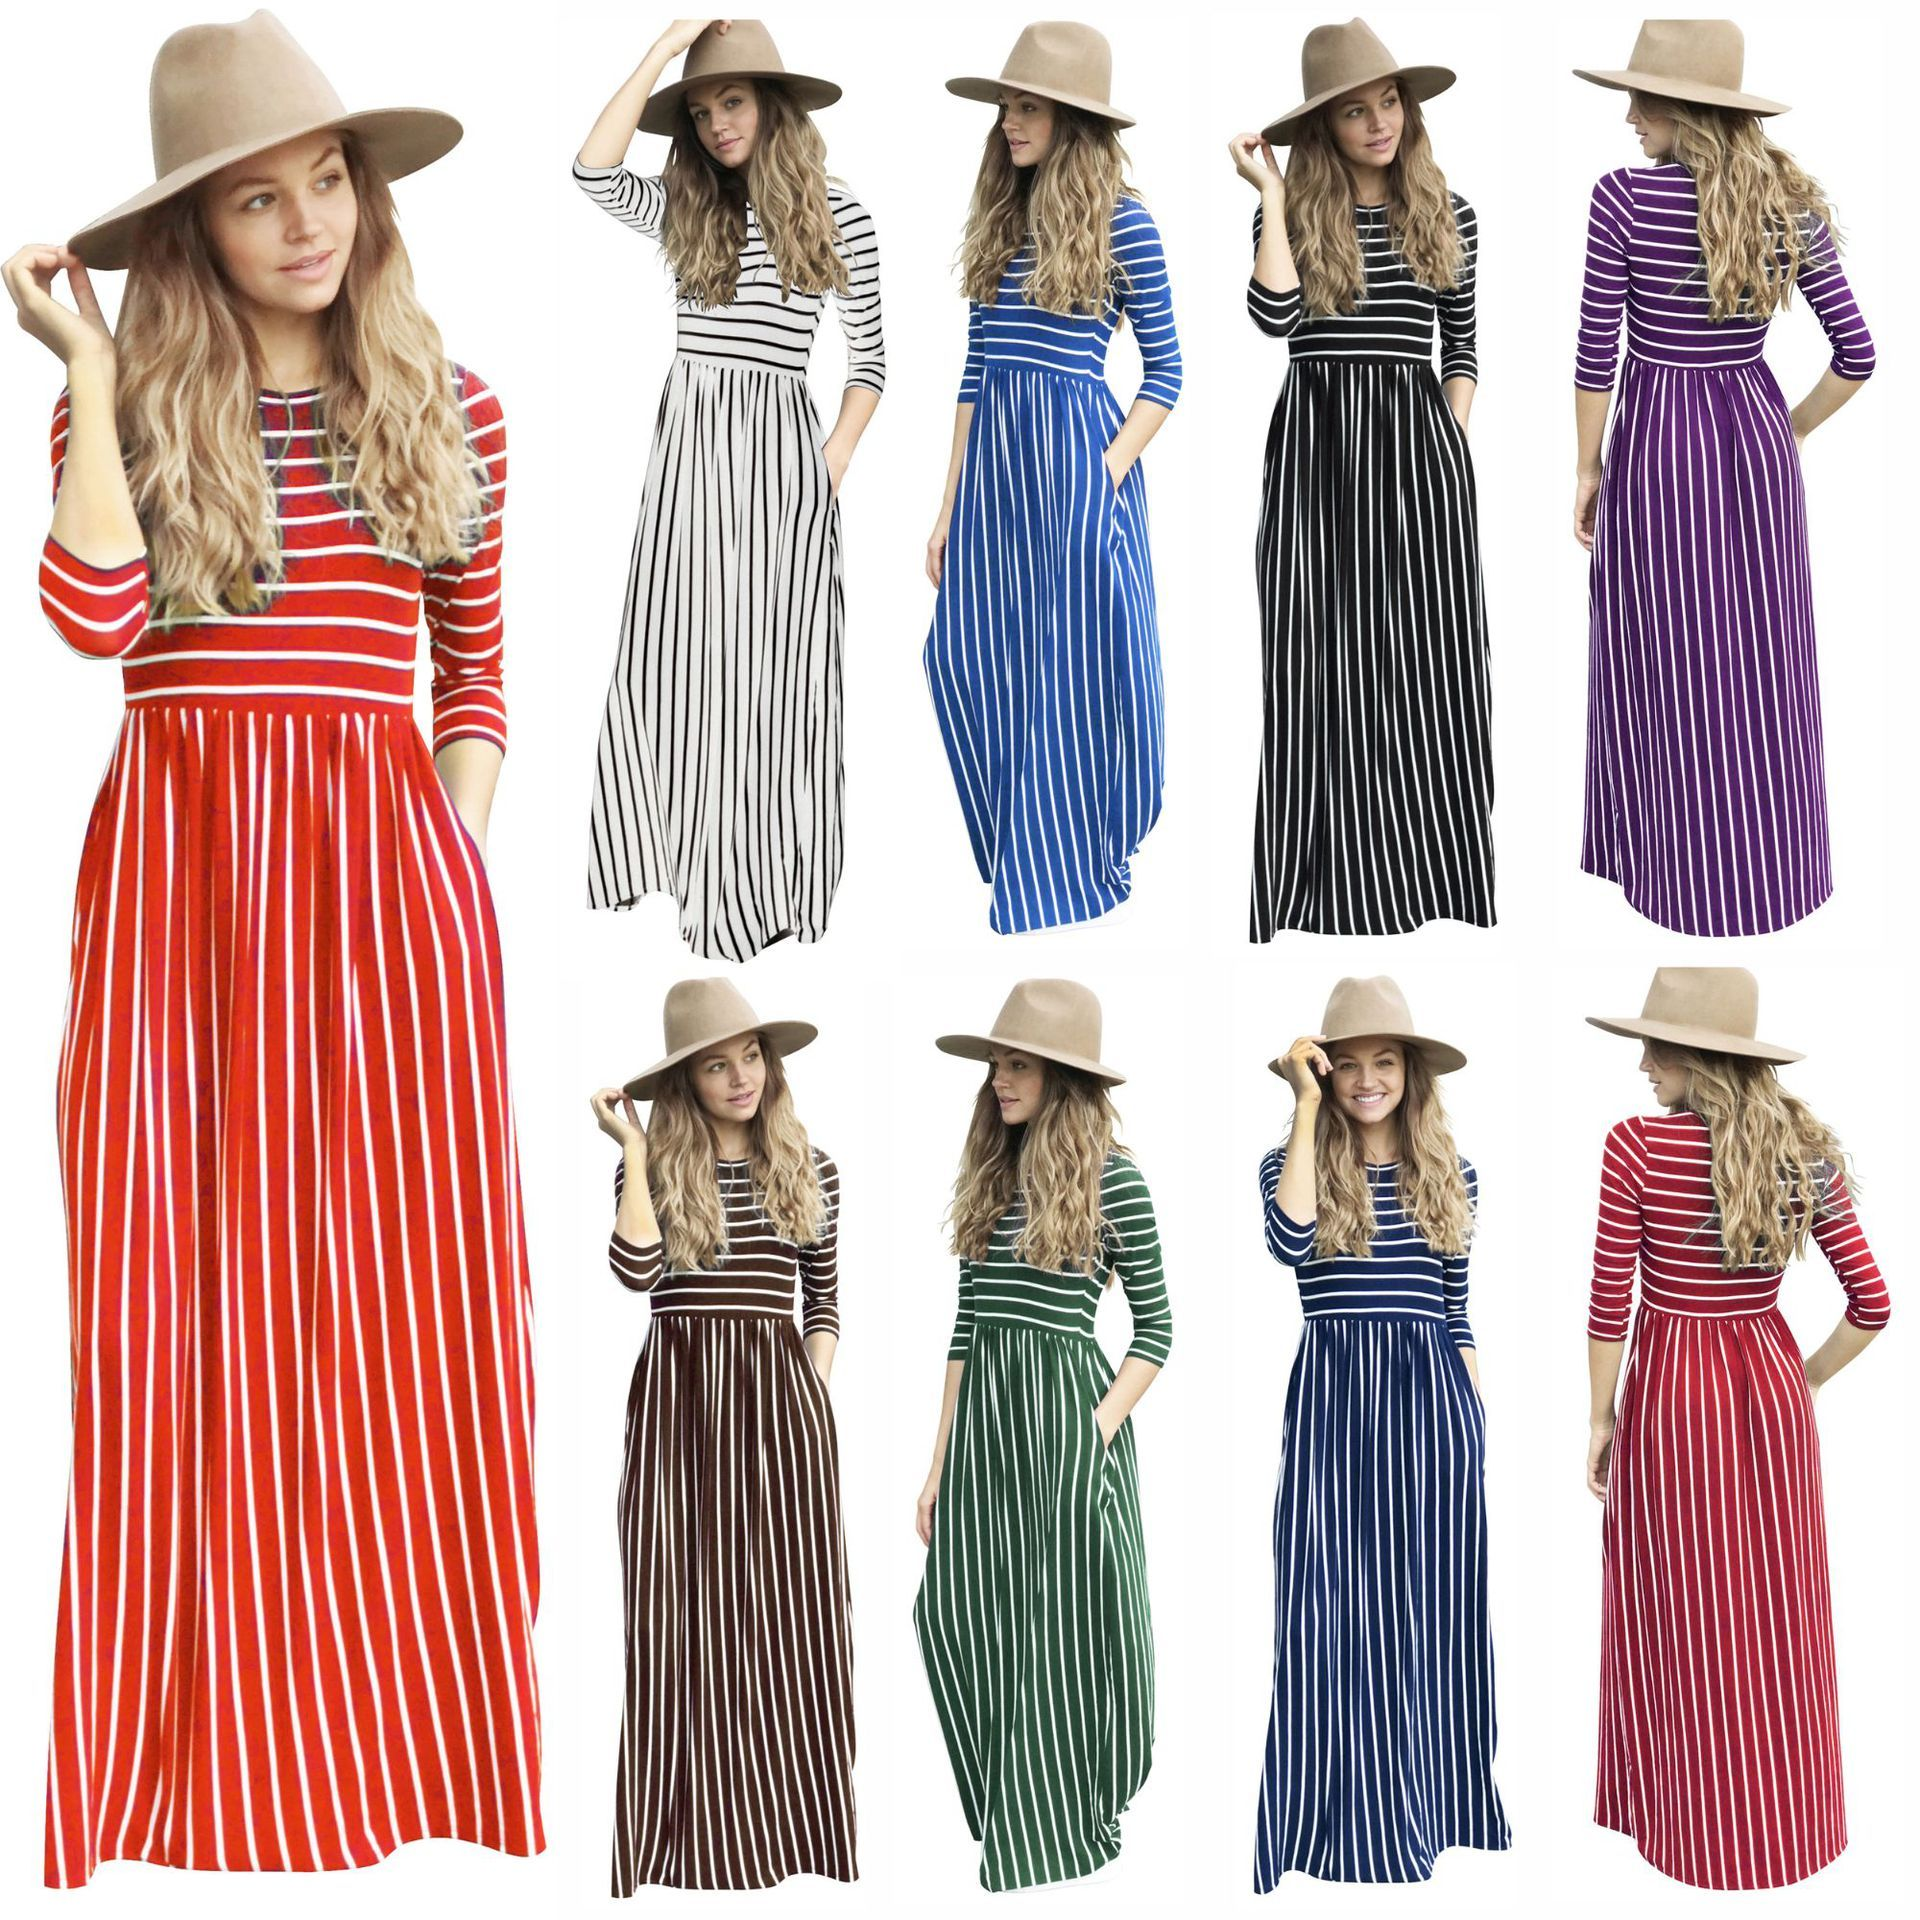 Dresses for Women Stripe Maxi Dress Casual Short Sleeve Cocktail Party Tunic Sundress with Pockets